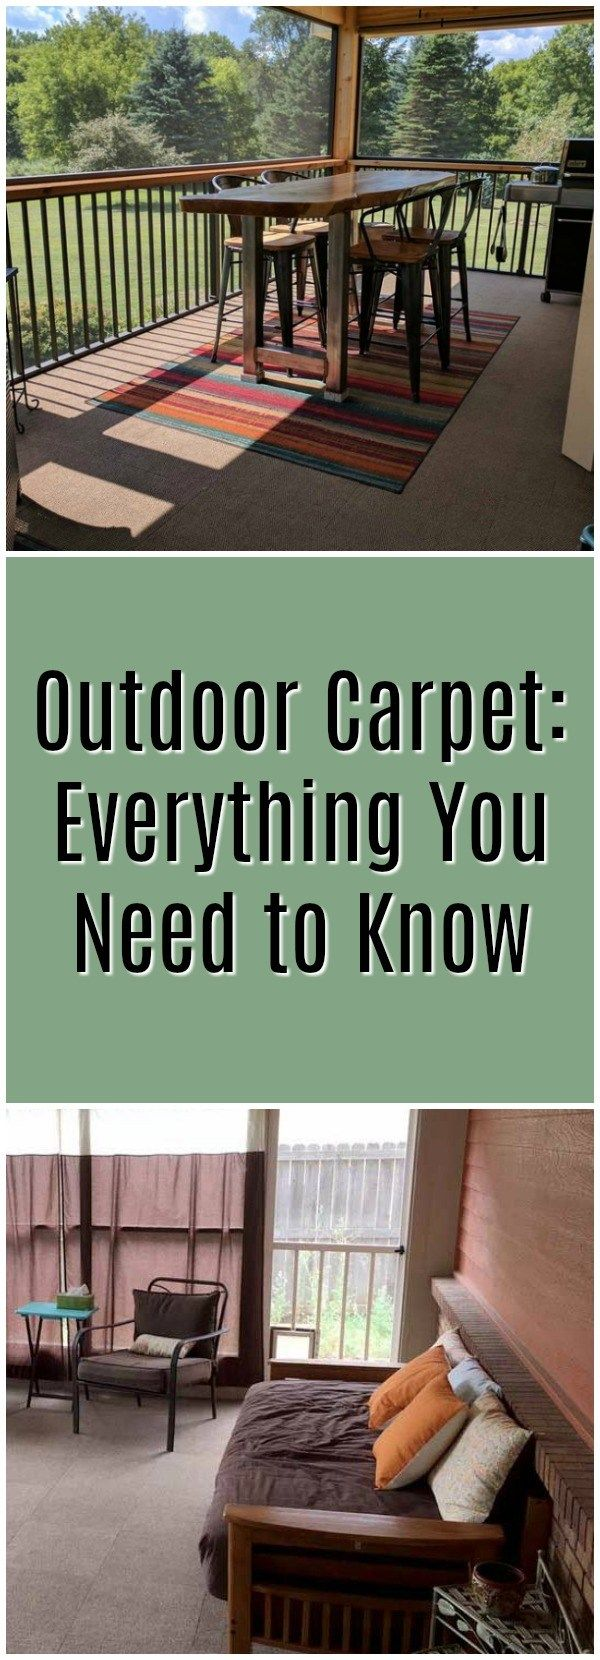 Who wants outdoor carpet? Basically no one, right? Wrong. Outdoor carpet is the latest evolution of carpet technology. It's weather resistant, mildew and mold resistant, and water resistant. There's now no reason to NOT have carpet in your outdoor oasis. https://www.flooringinc.com/blog/outdoor-carpet-everything-you-need-to-know/